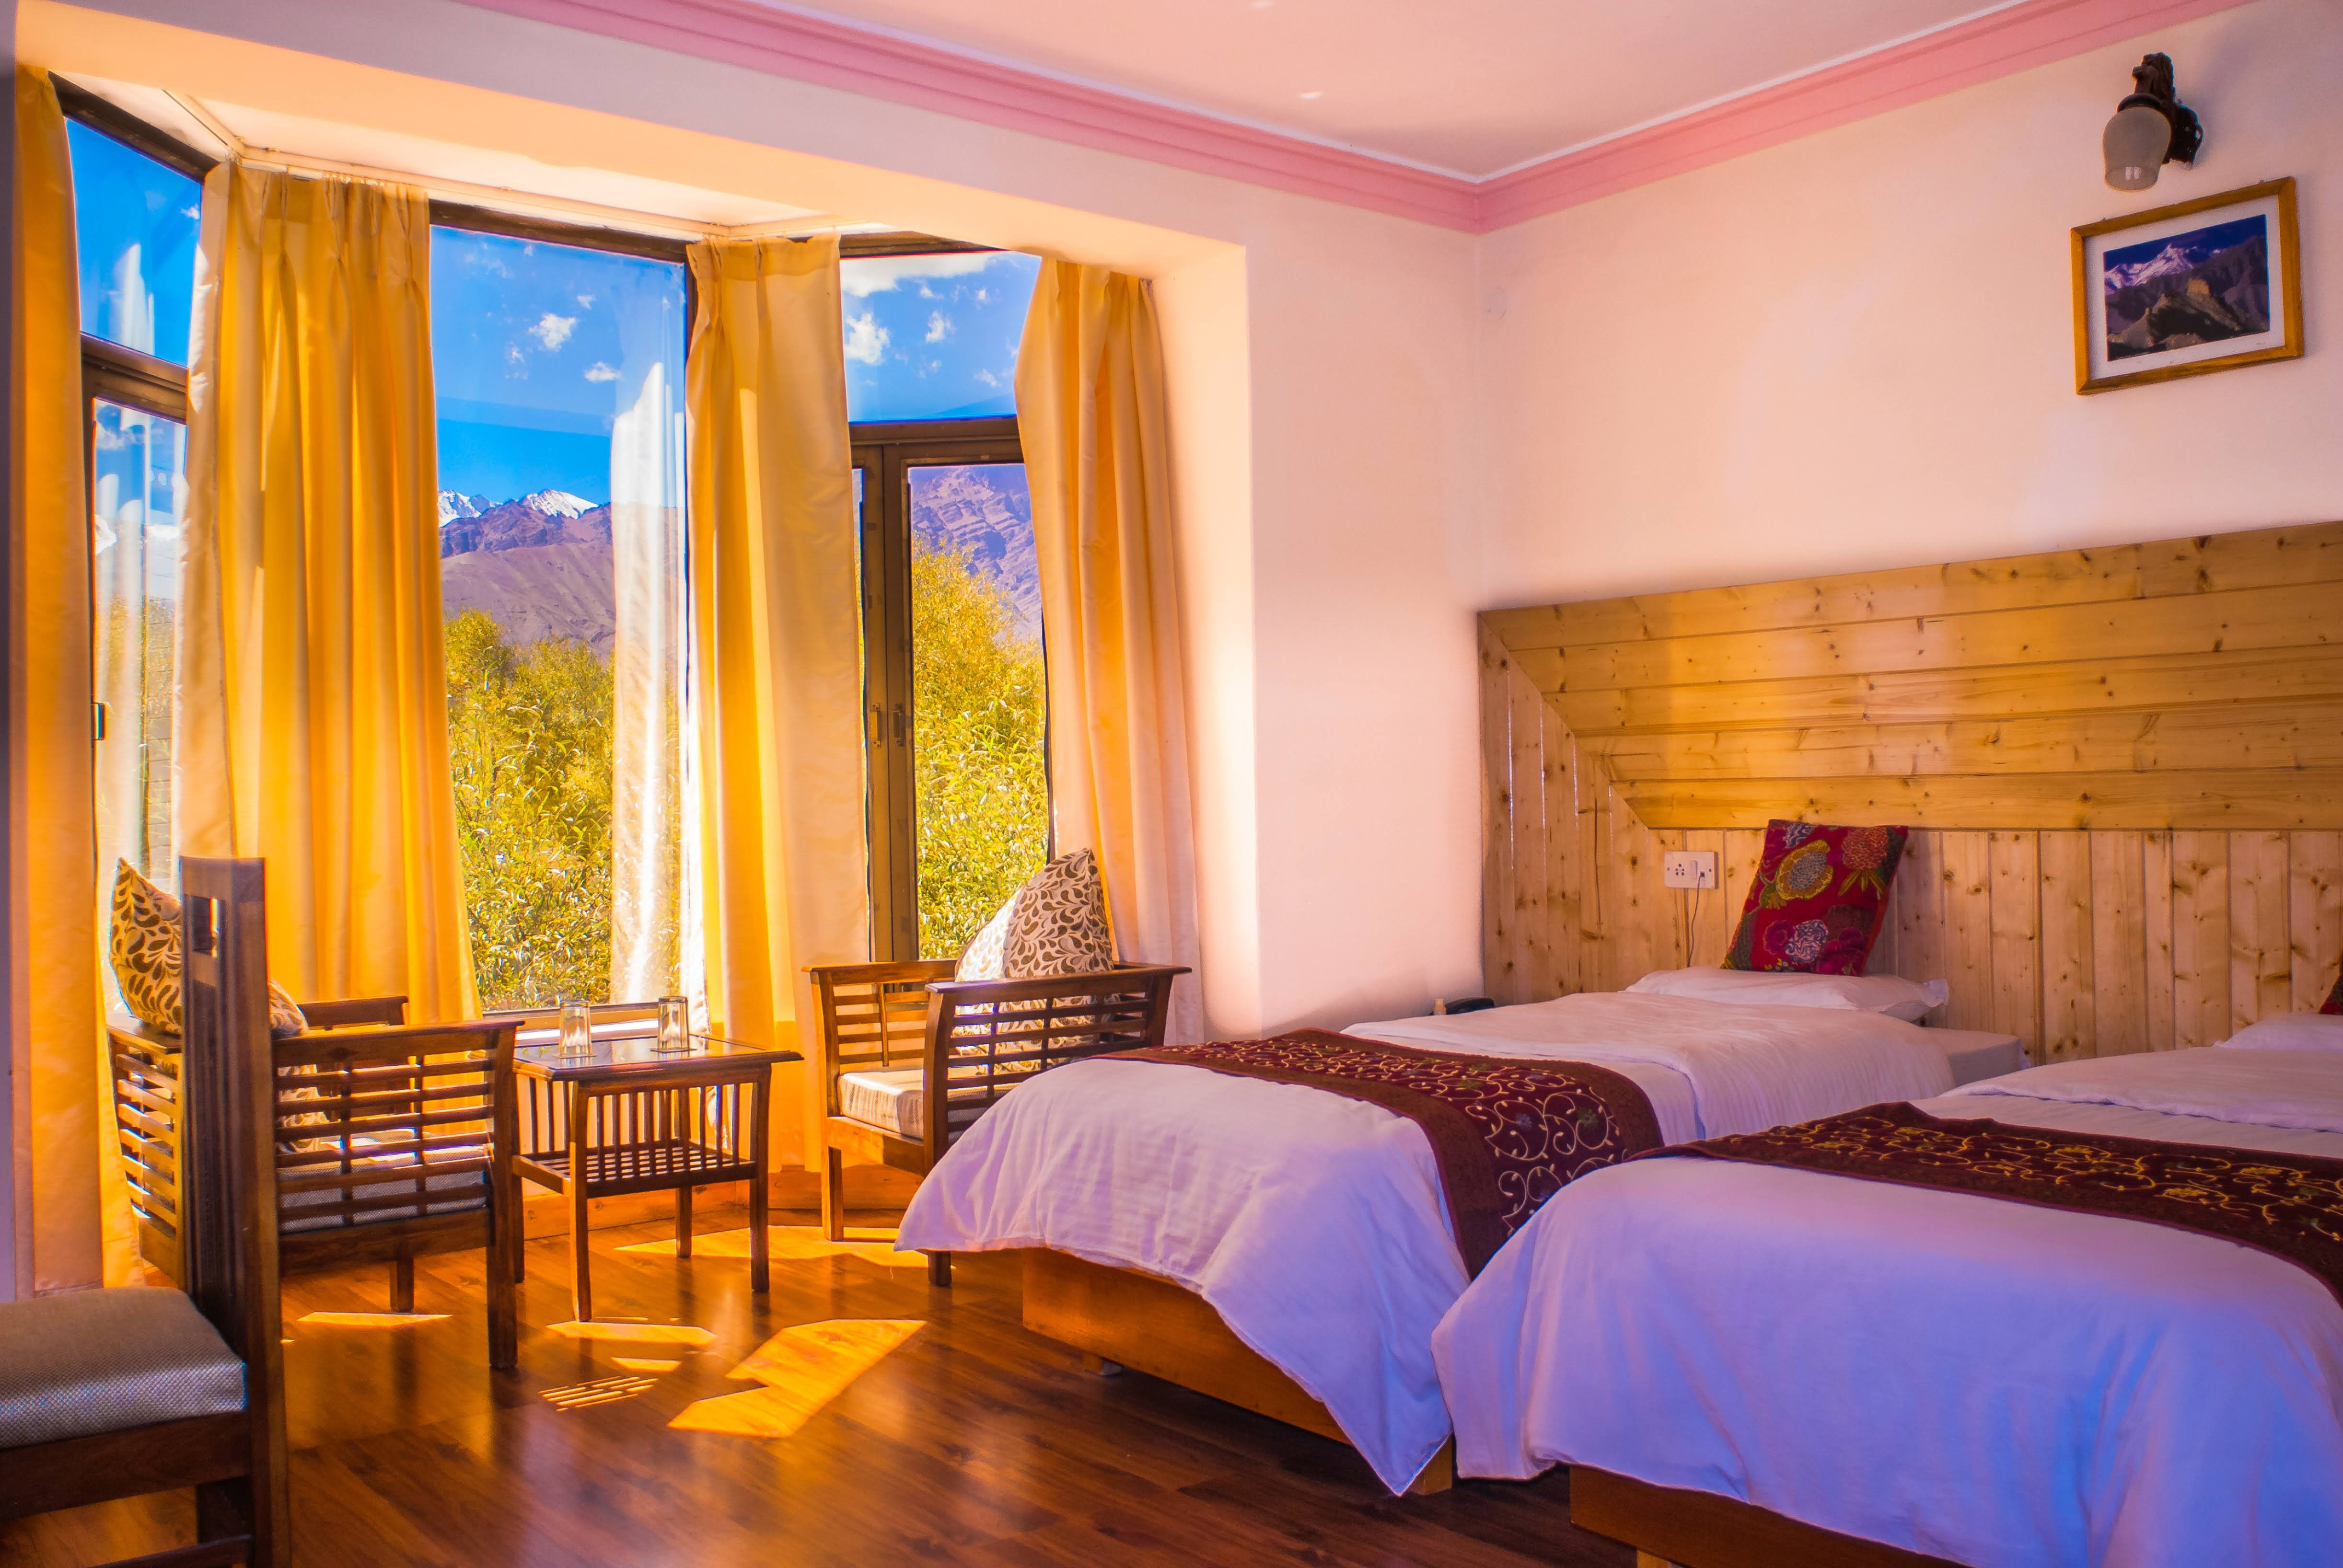 Super Deluxe River & Himalaya View Rooms 2 Hotel Nature Residency Leh Market My Hotel